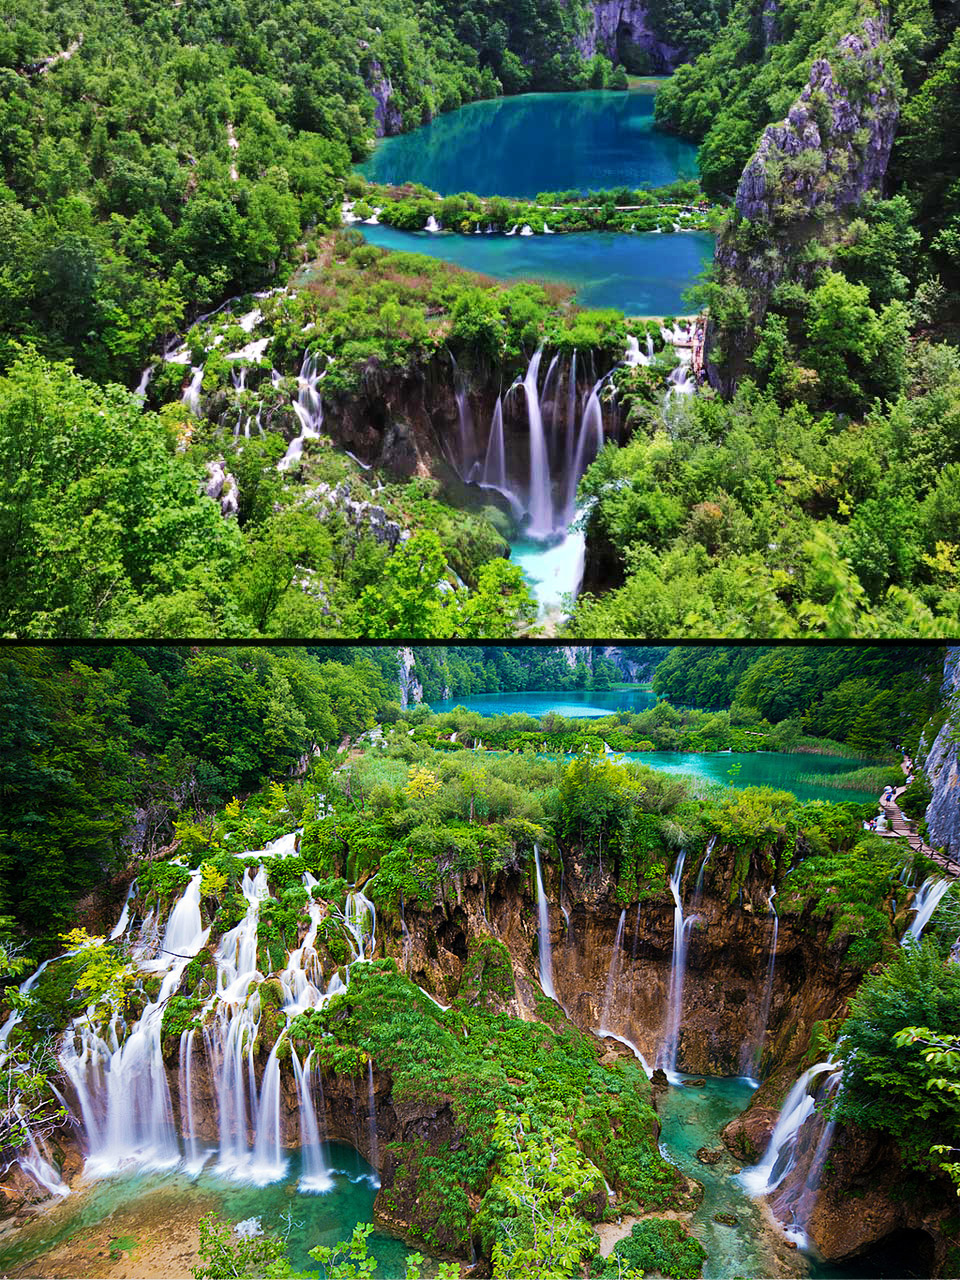 10 of the most beautiful waterfalls in the world. #2 seems out of this world